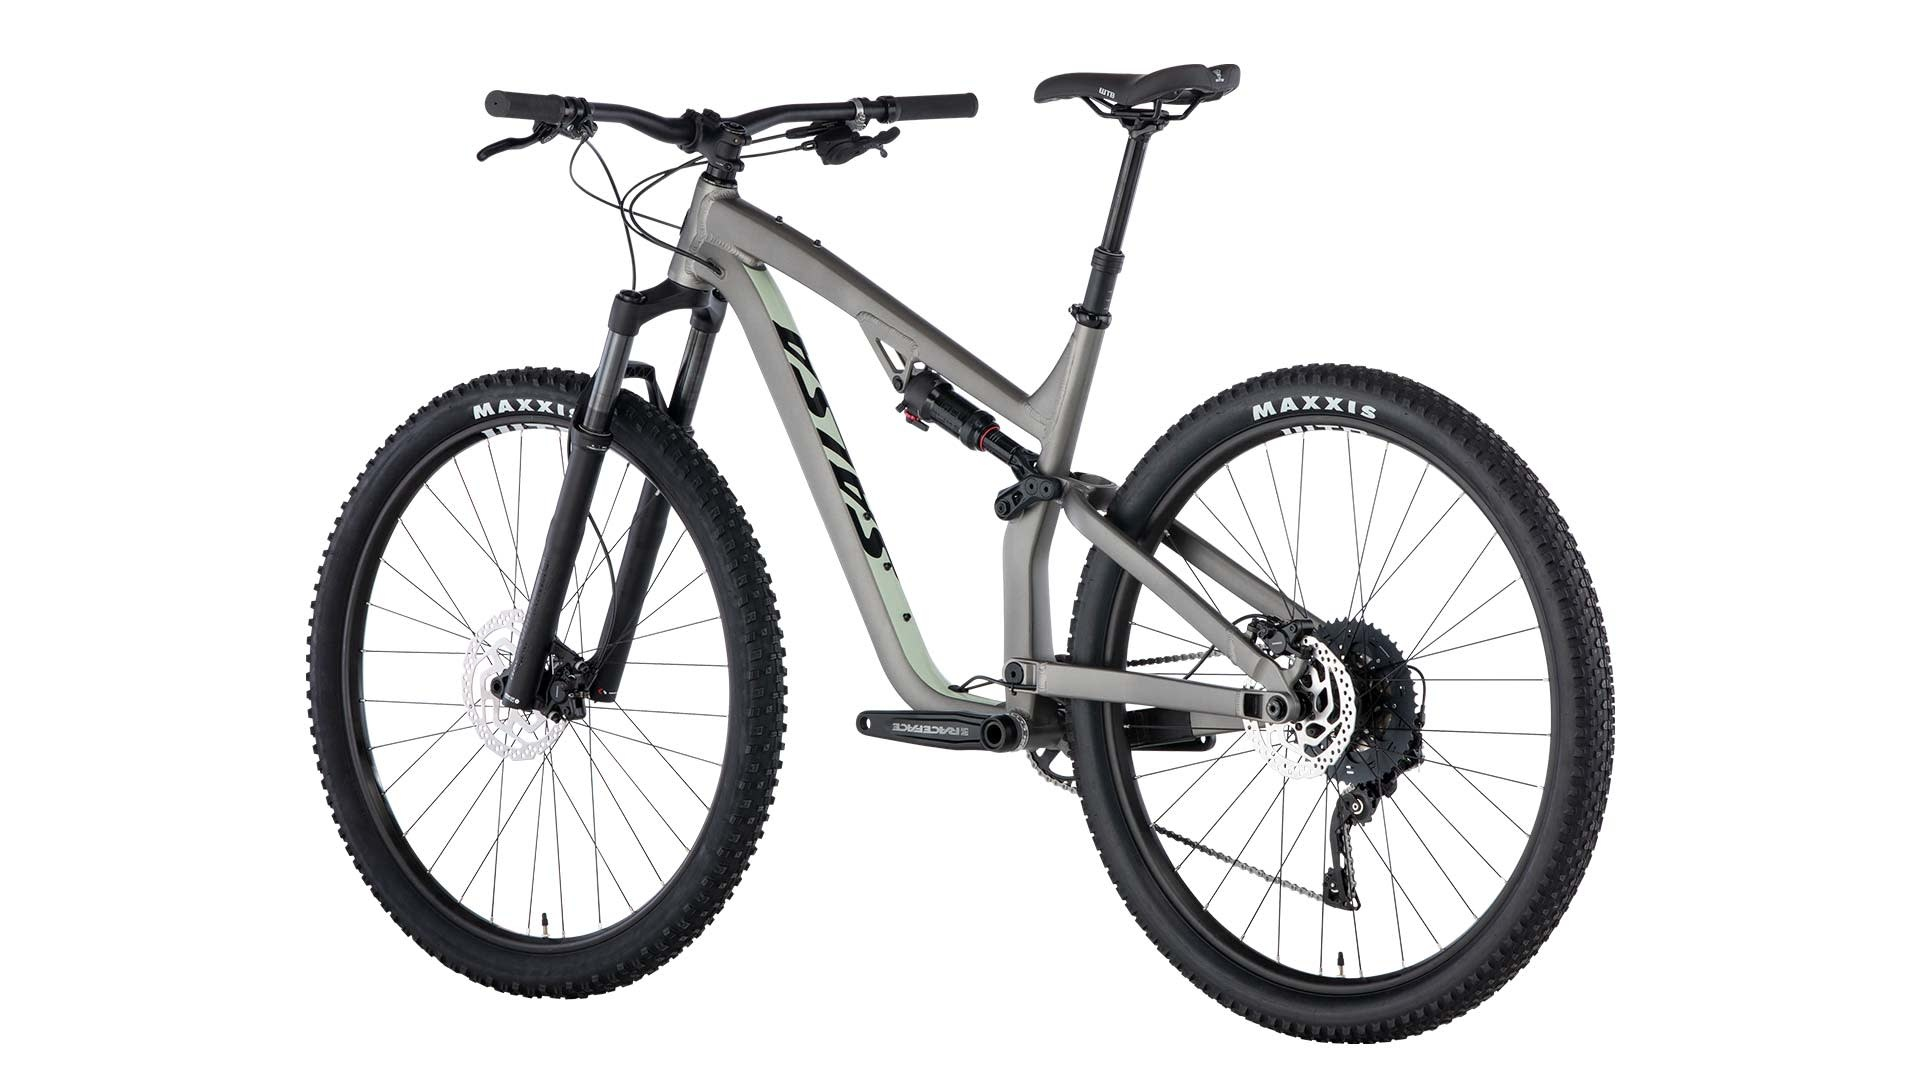 Salsa Salsa Spearfish SLX Bike Gray 2019